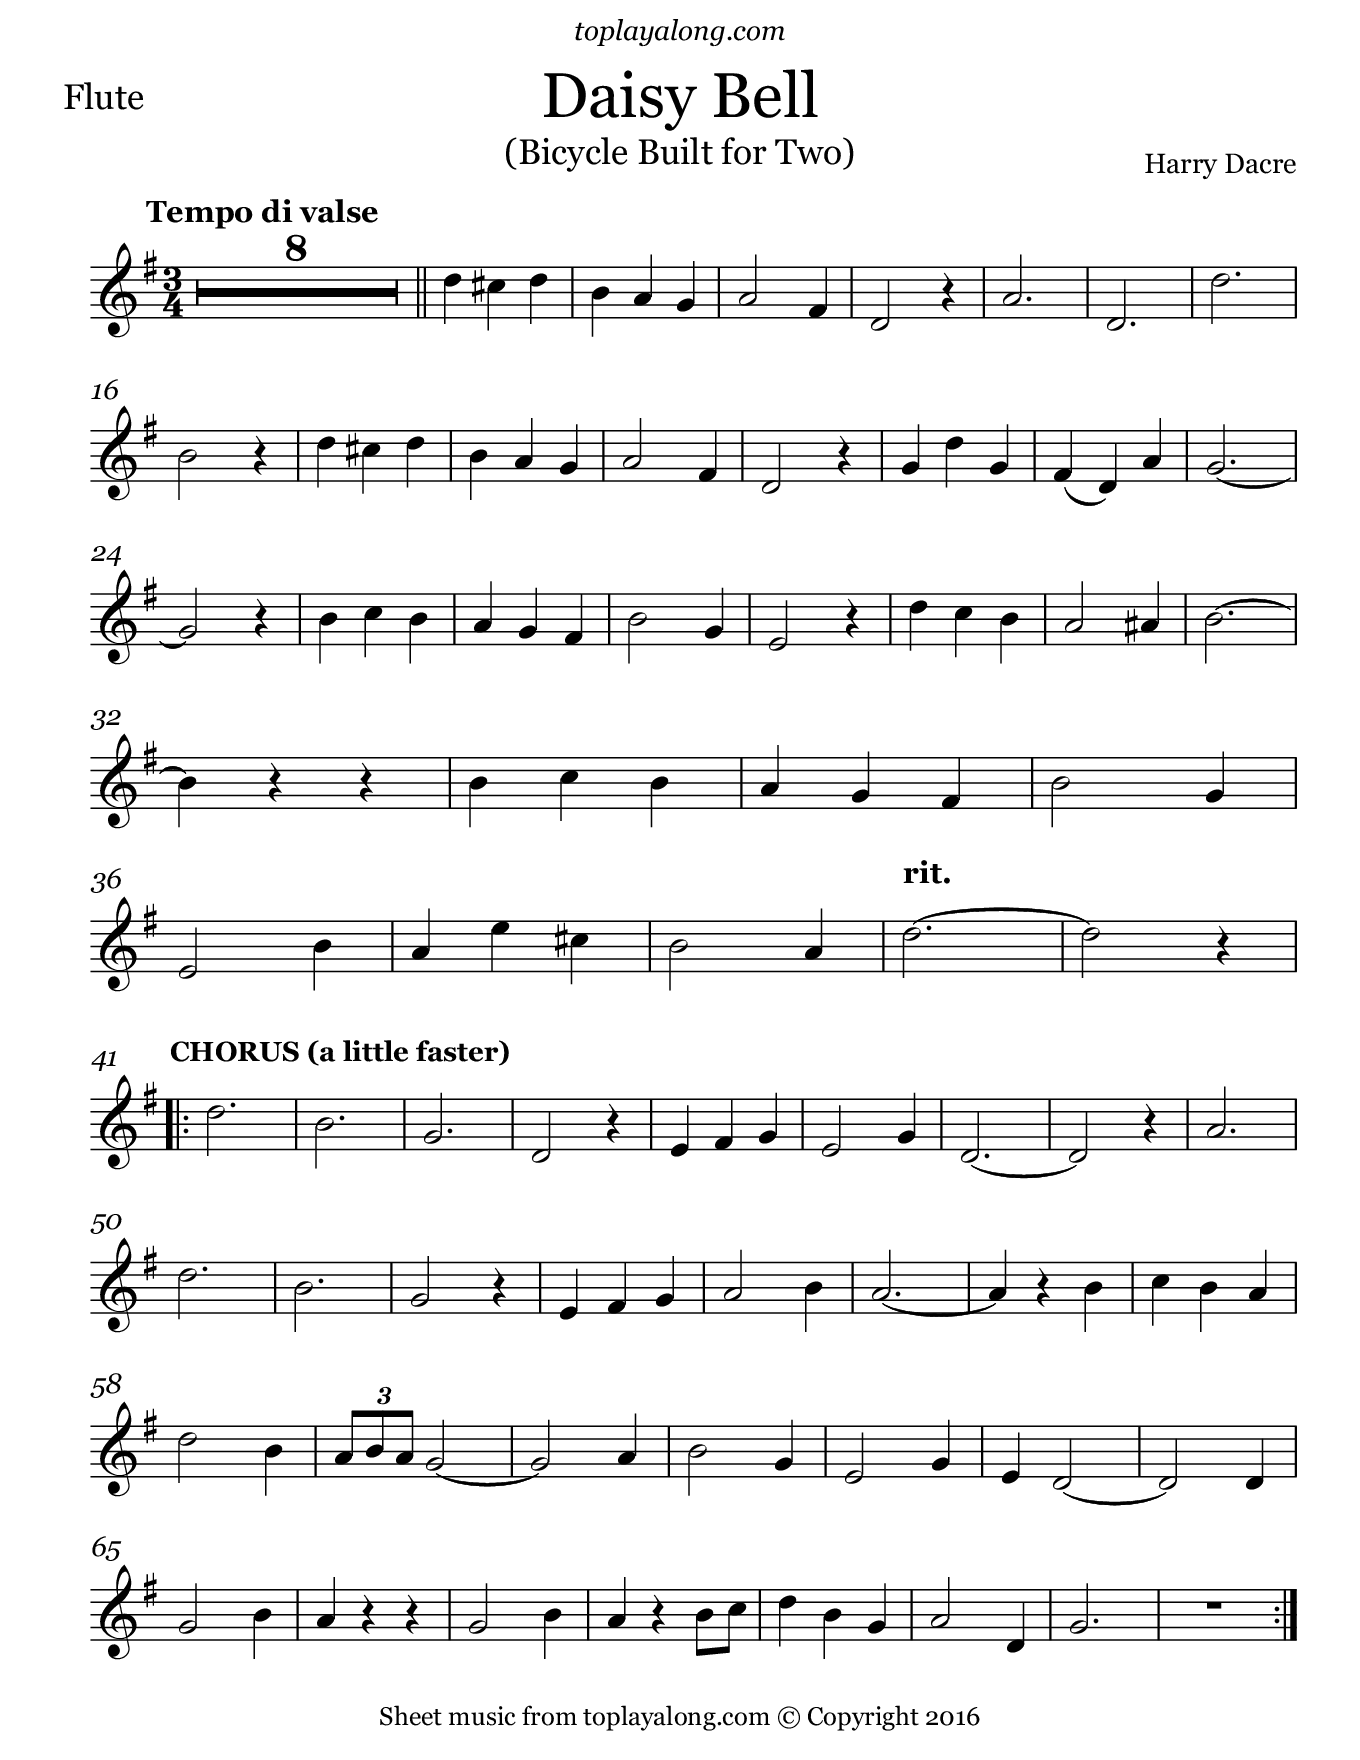 Daisy Bell (Bicycle Built for Two) by Dacre. Sheet music for Flute, page 1.